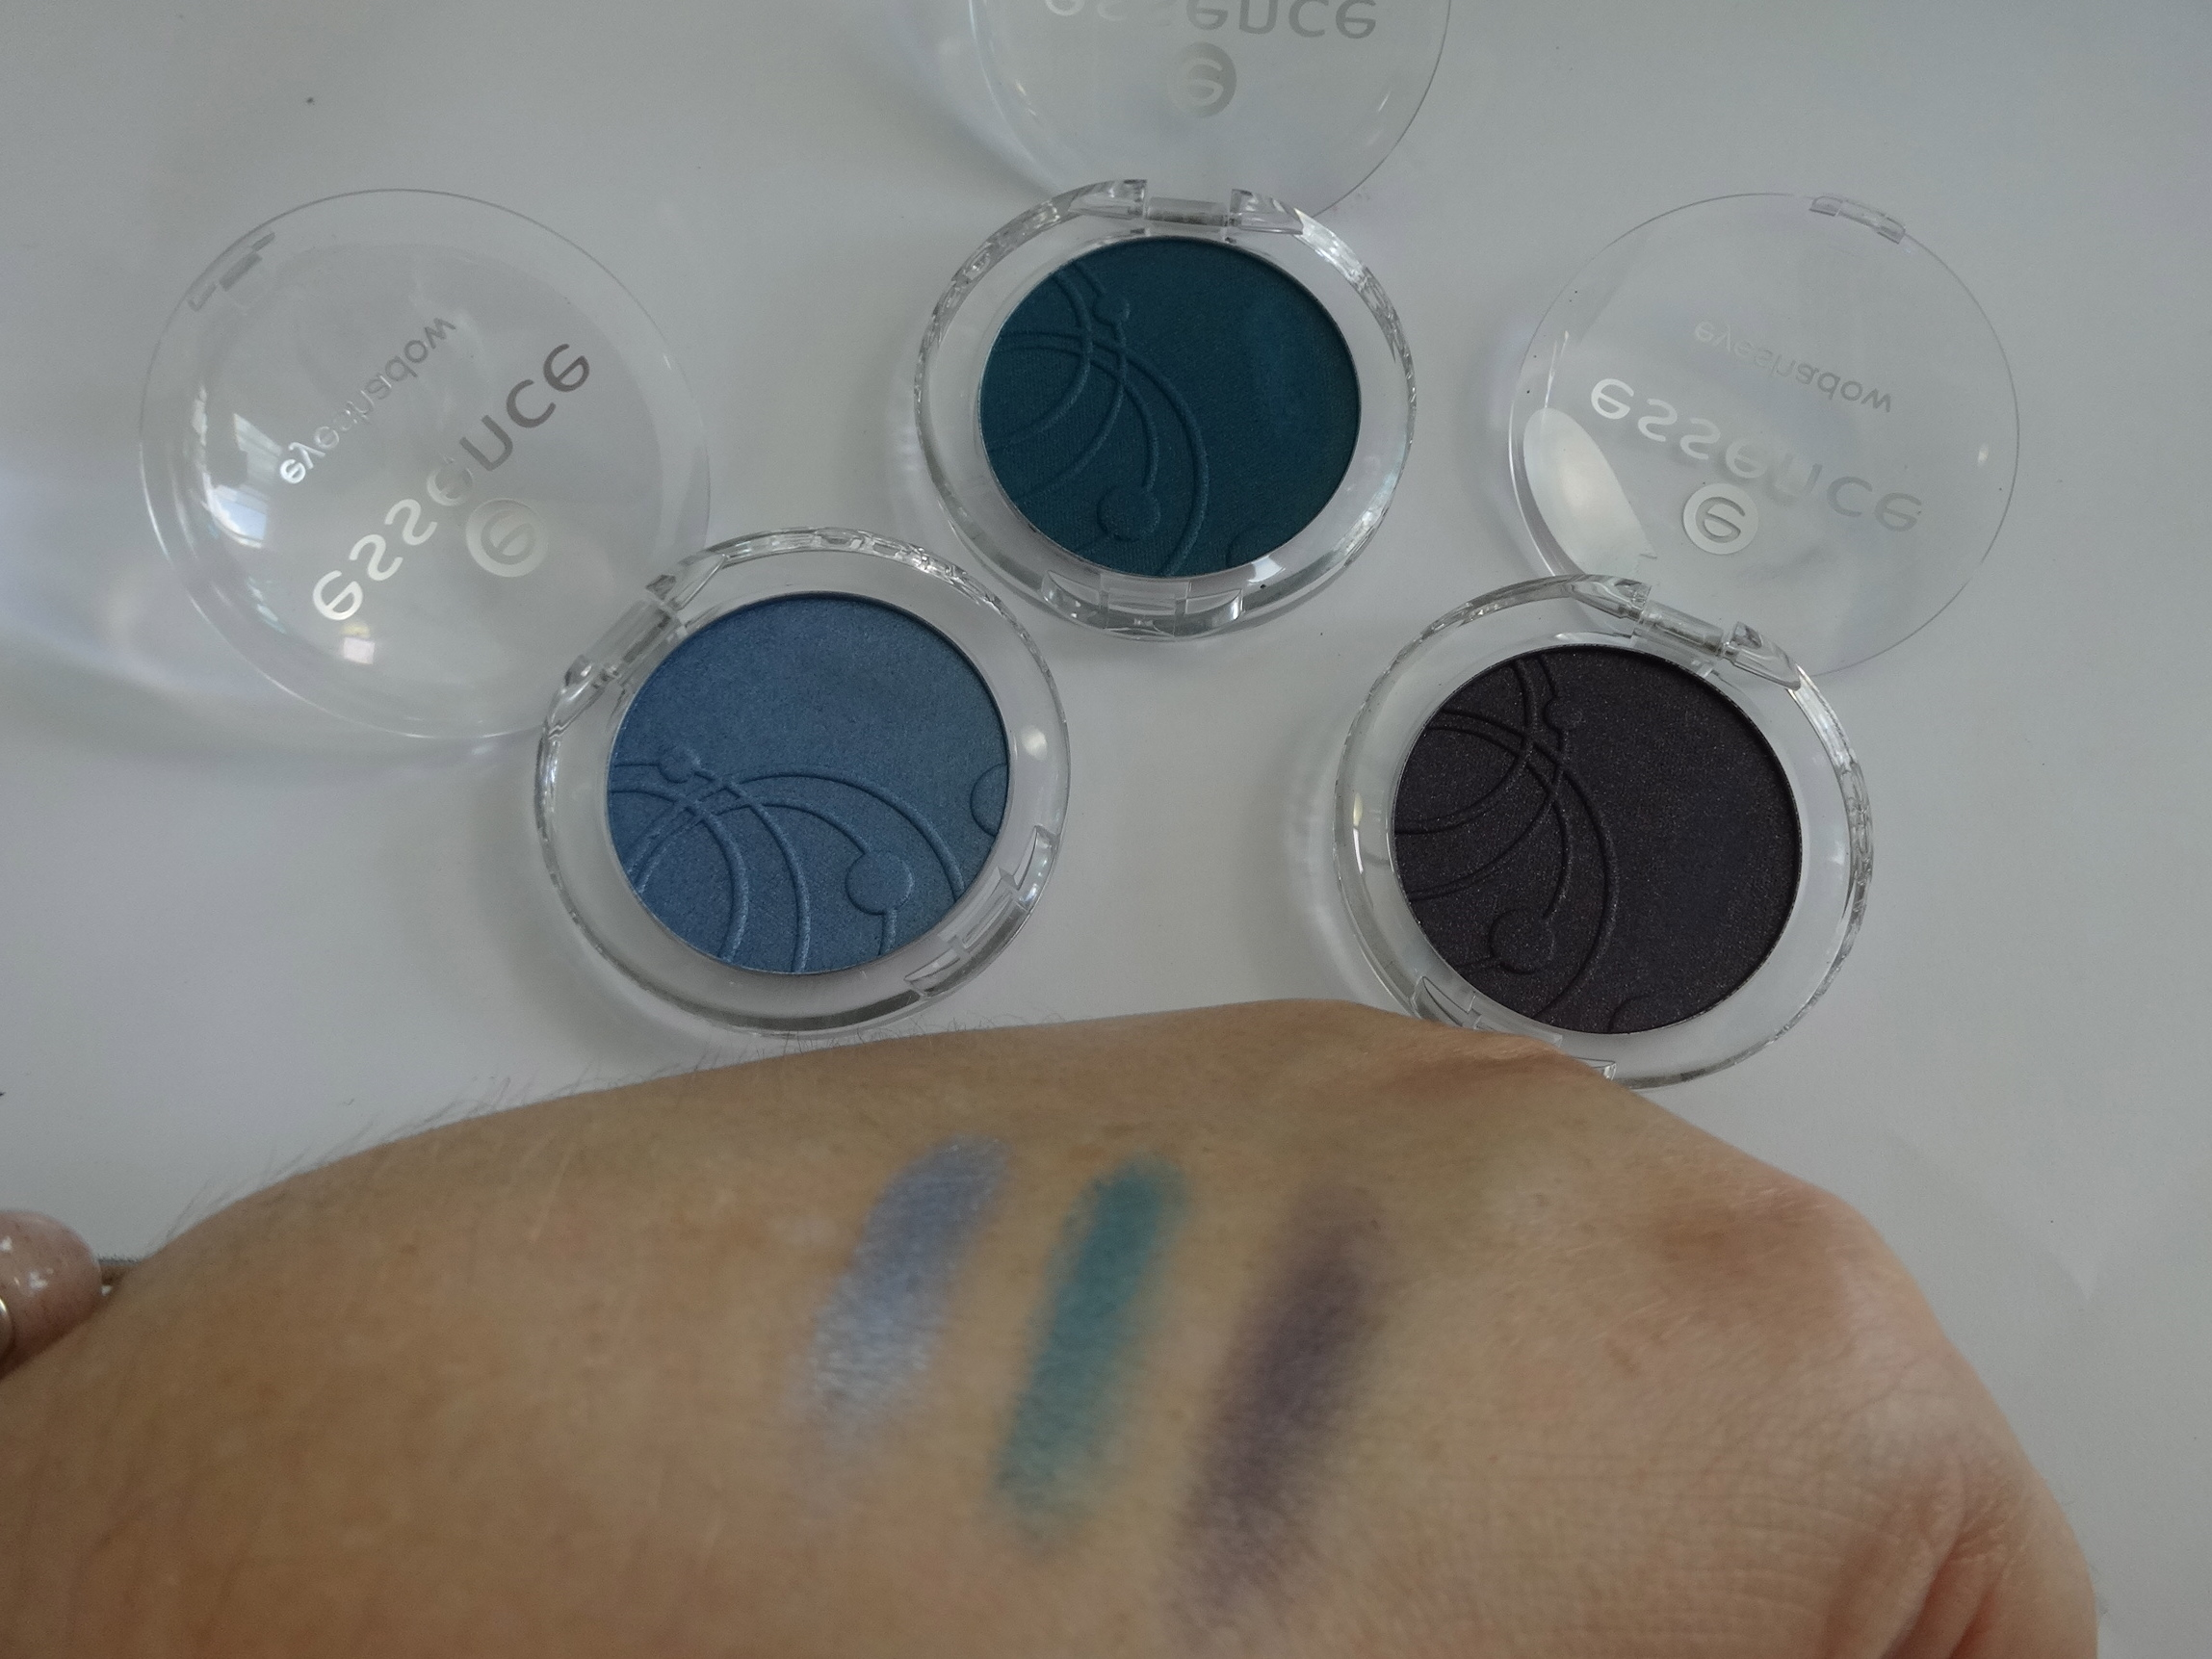 mono eyeshadows apllied dry